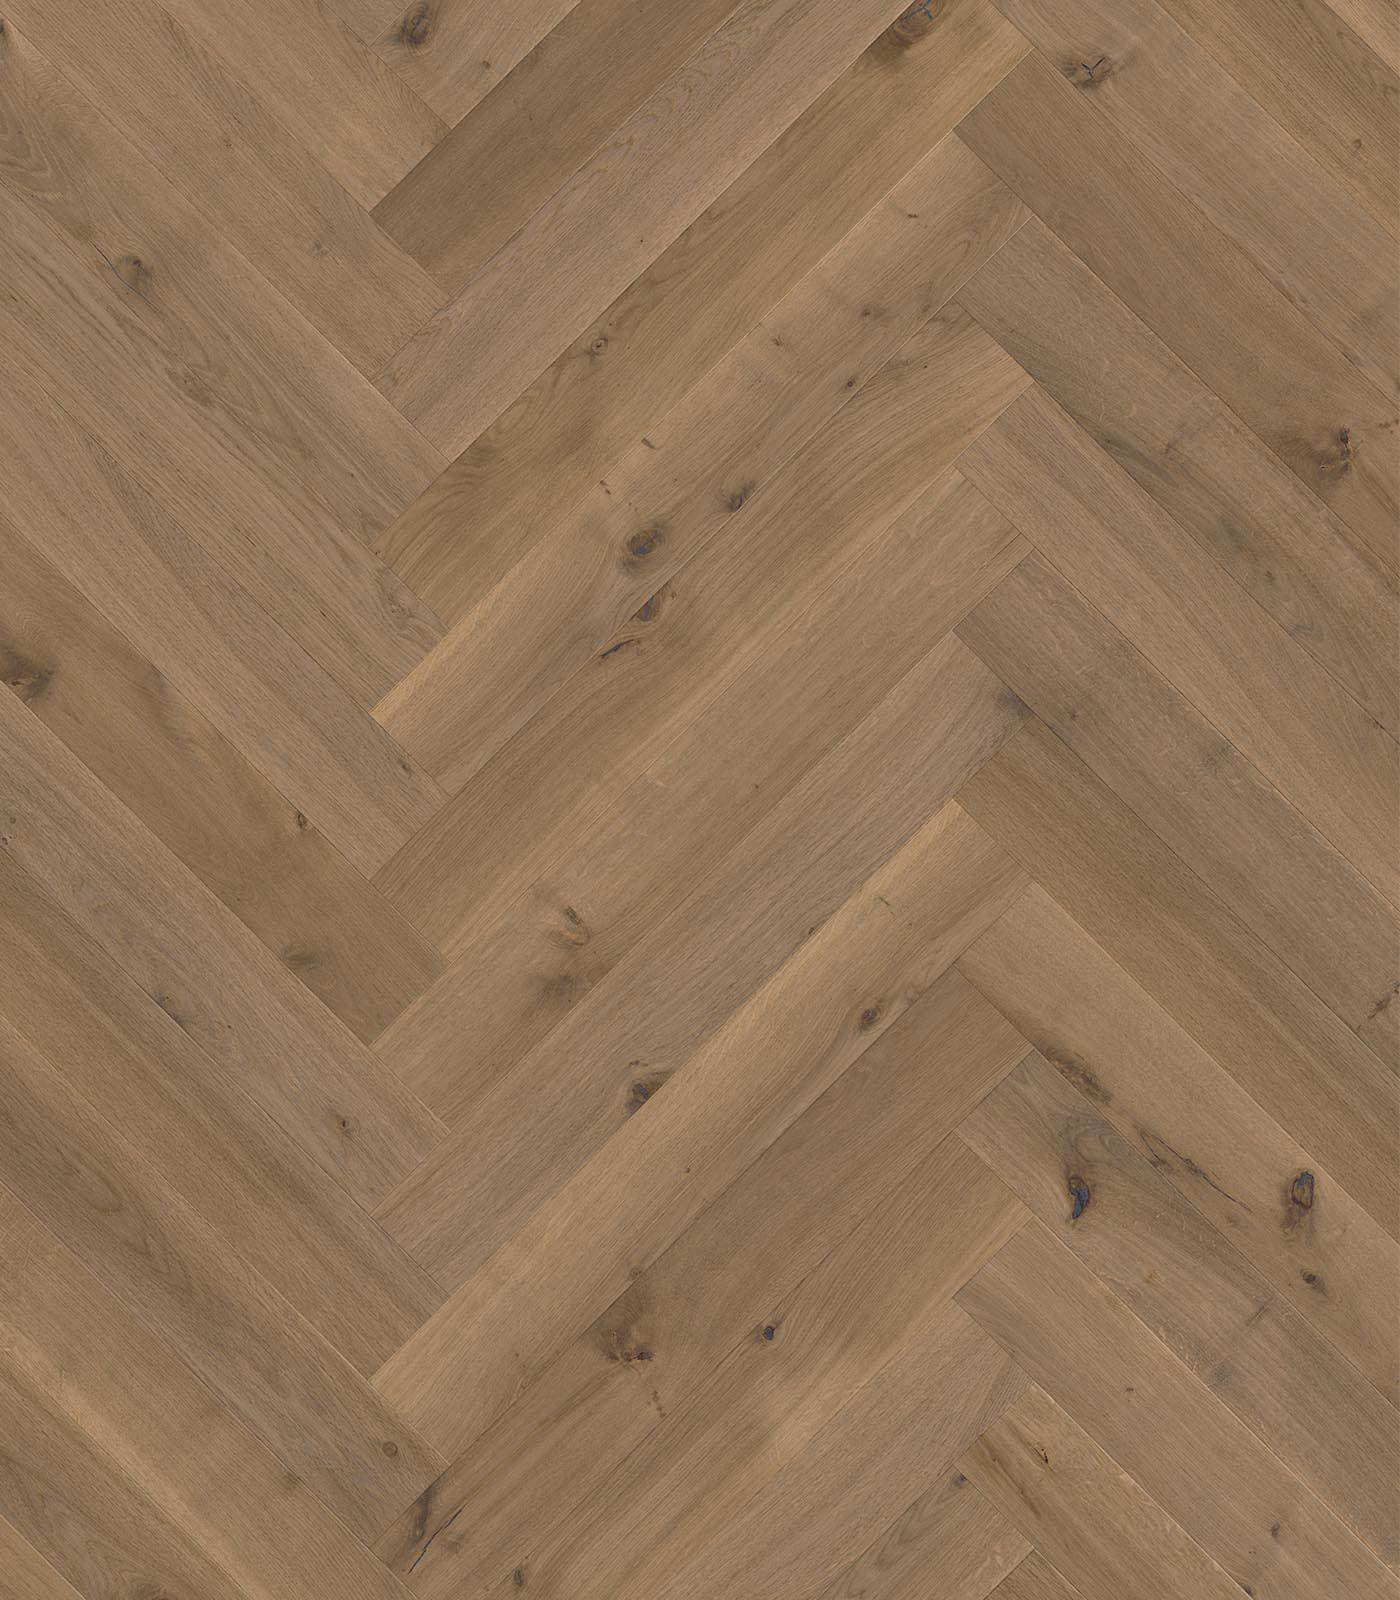 Cairns-Fashion Collection-European Herringbone Oak floors-flat